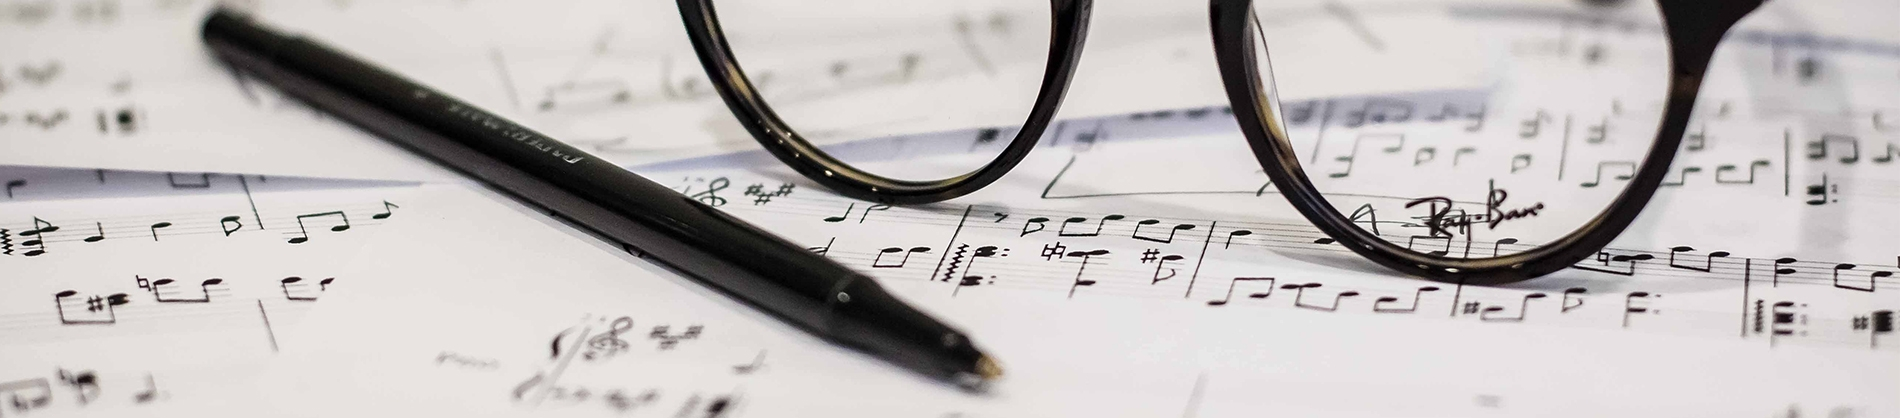 Sheet music with a pair of glasses and pen resting on top